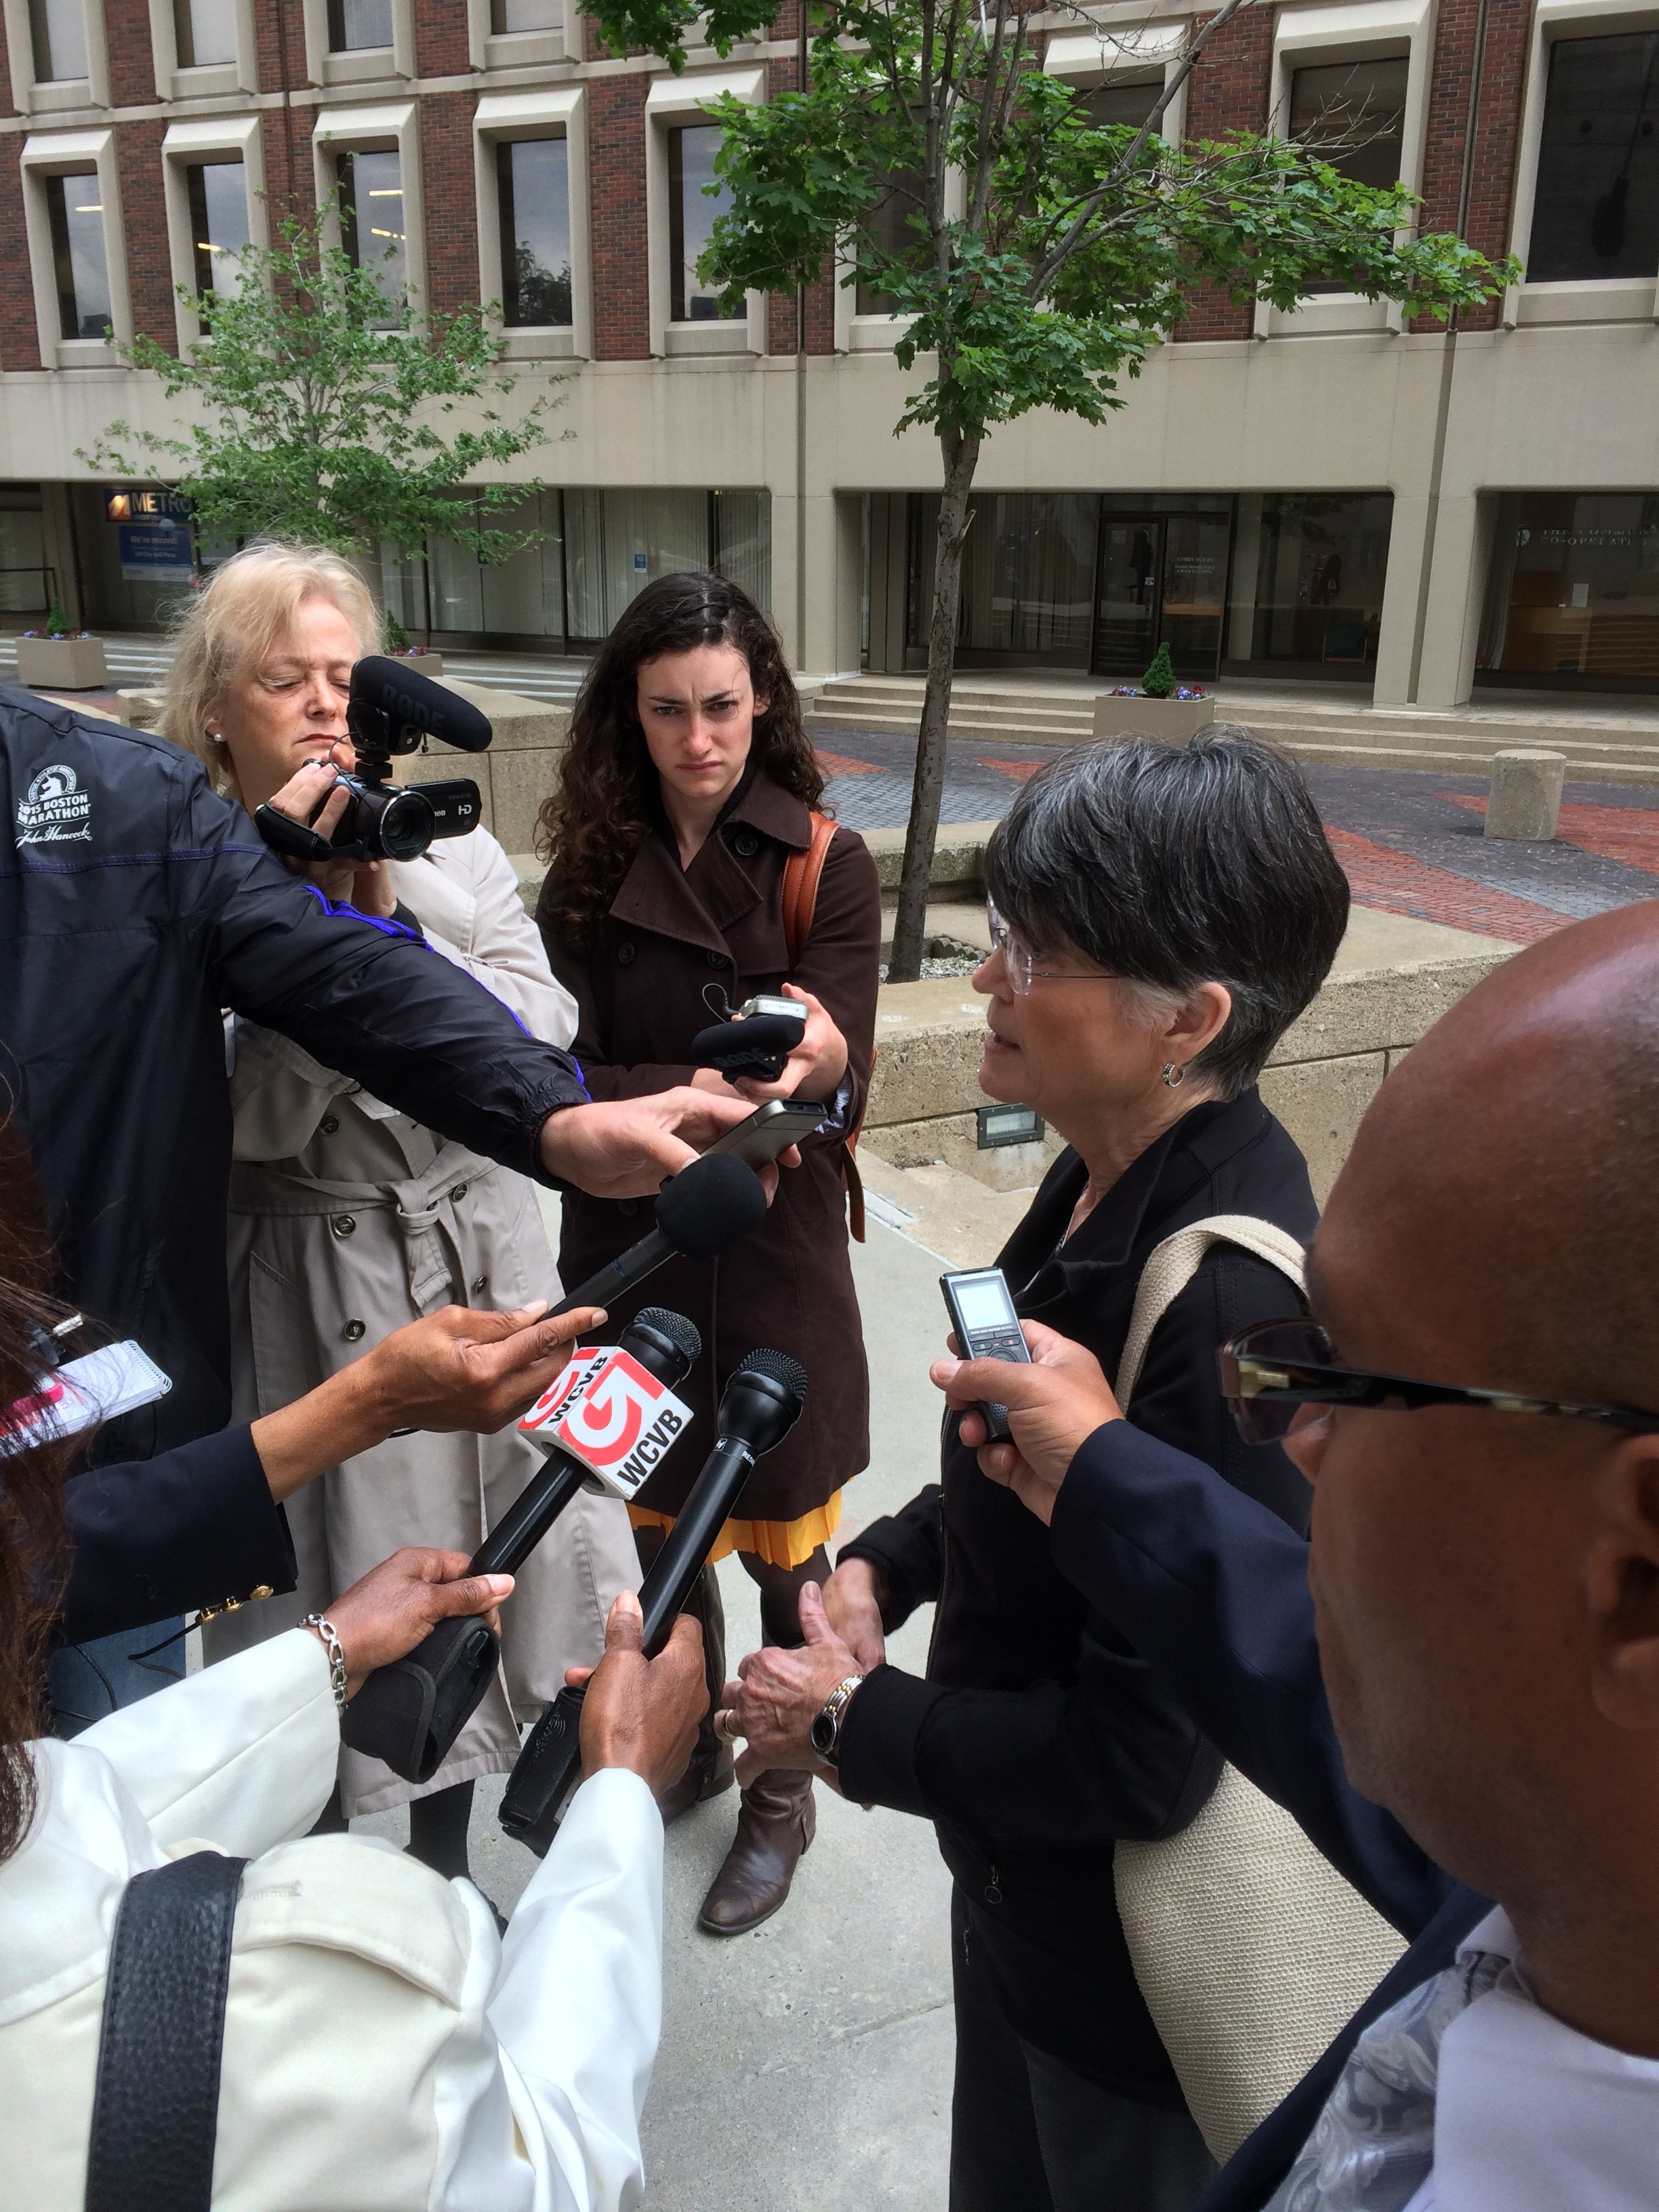 Elaine Murphy speaking to the press outside Boston's Suffolk County Courthouse after Sean Ellis's release on bail on June 3, 2015.